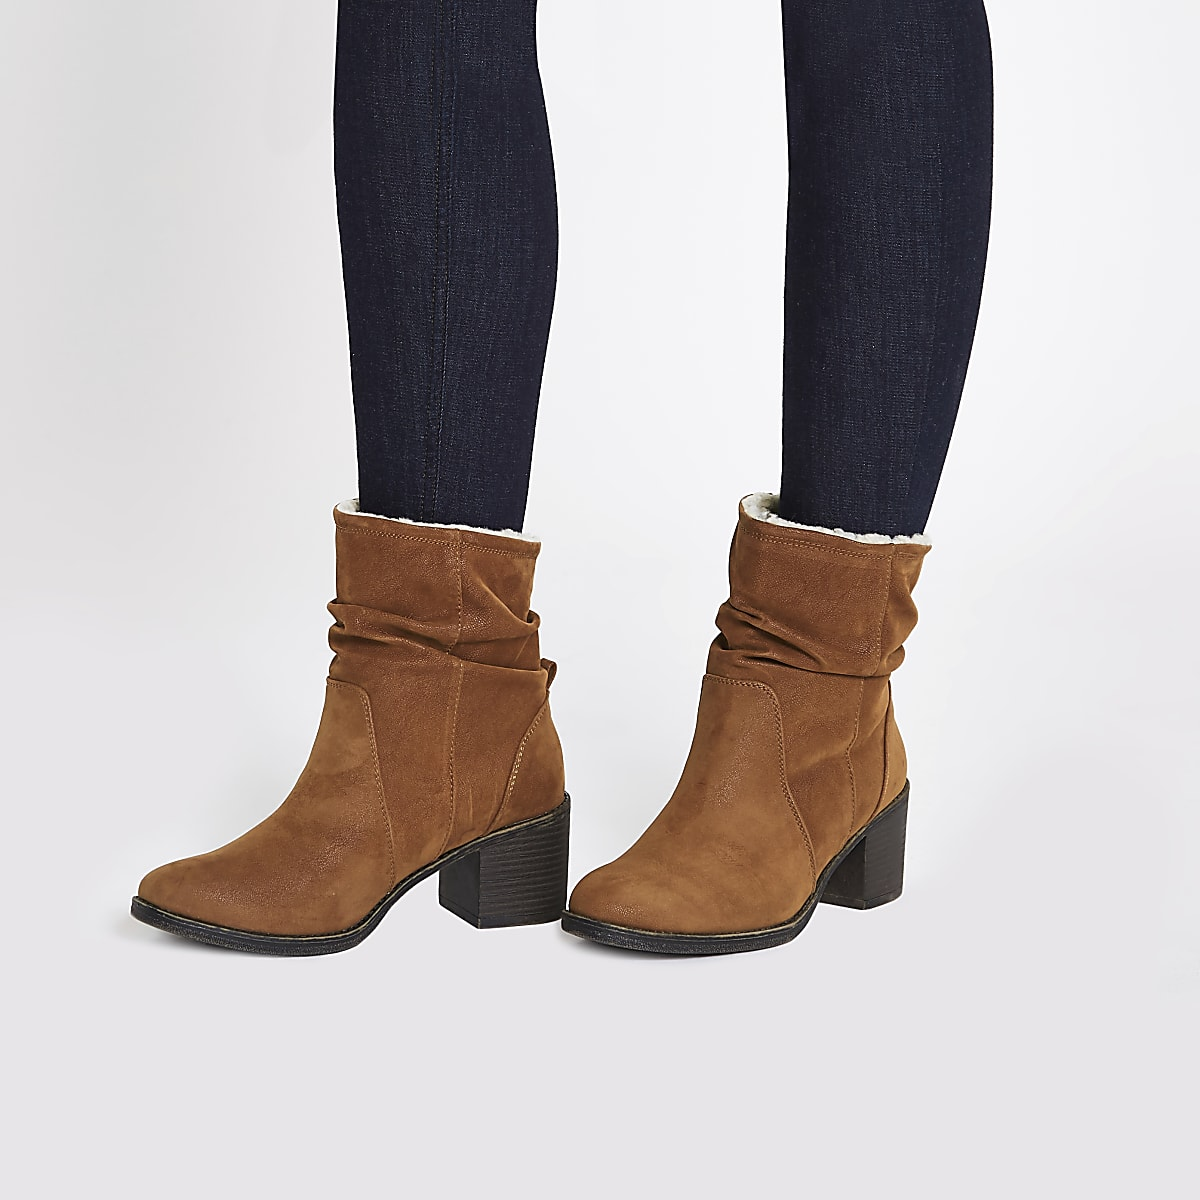 nouvelle collection 29db7 65e14 Light brown slouch block heel boots